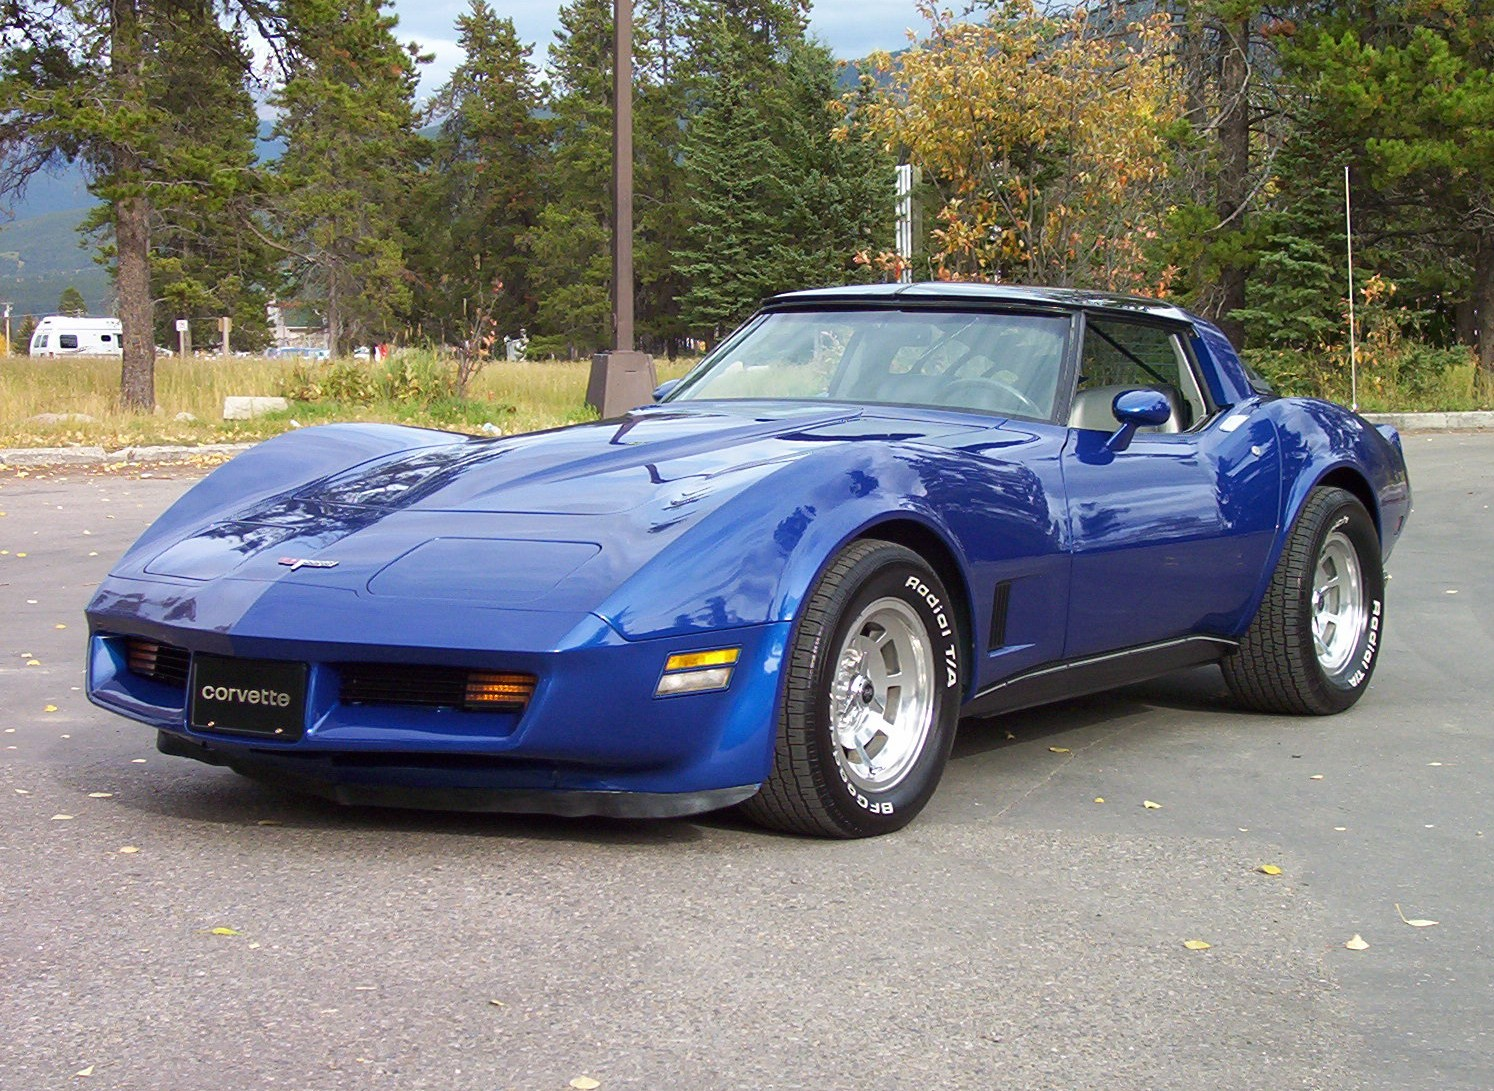 Chevrolet Corvette 2003 photo - 6